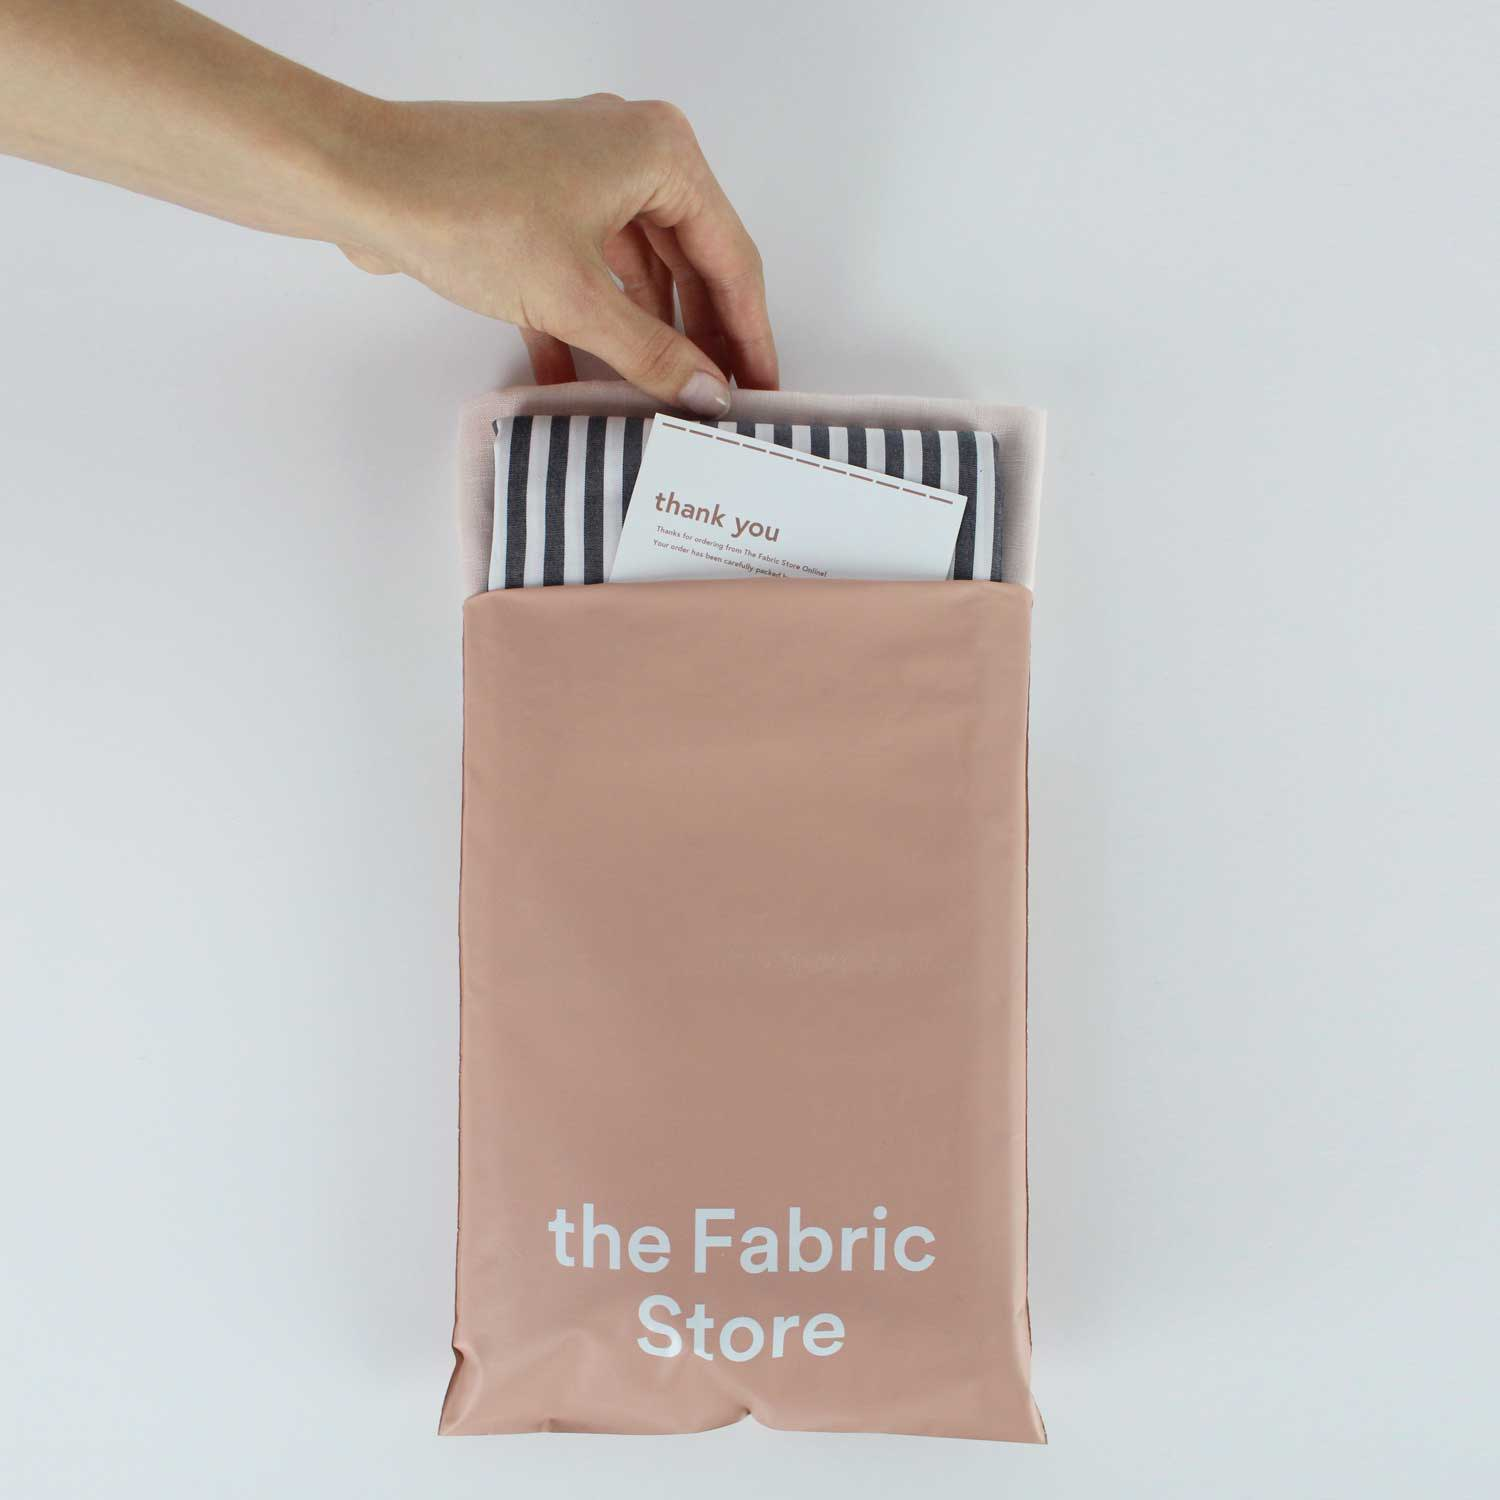 Buy Fabric Online - The Fabric Store USA